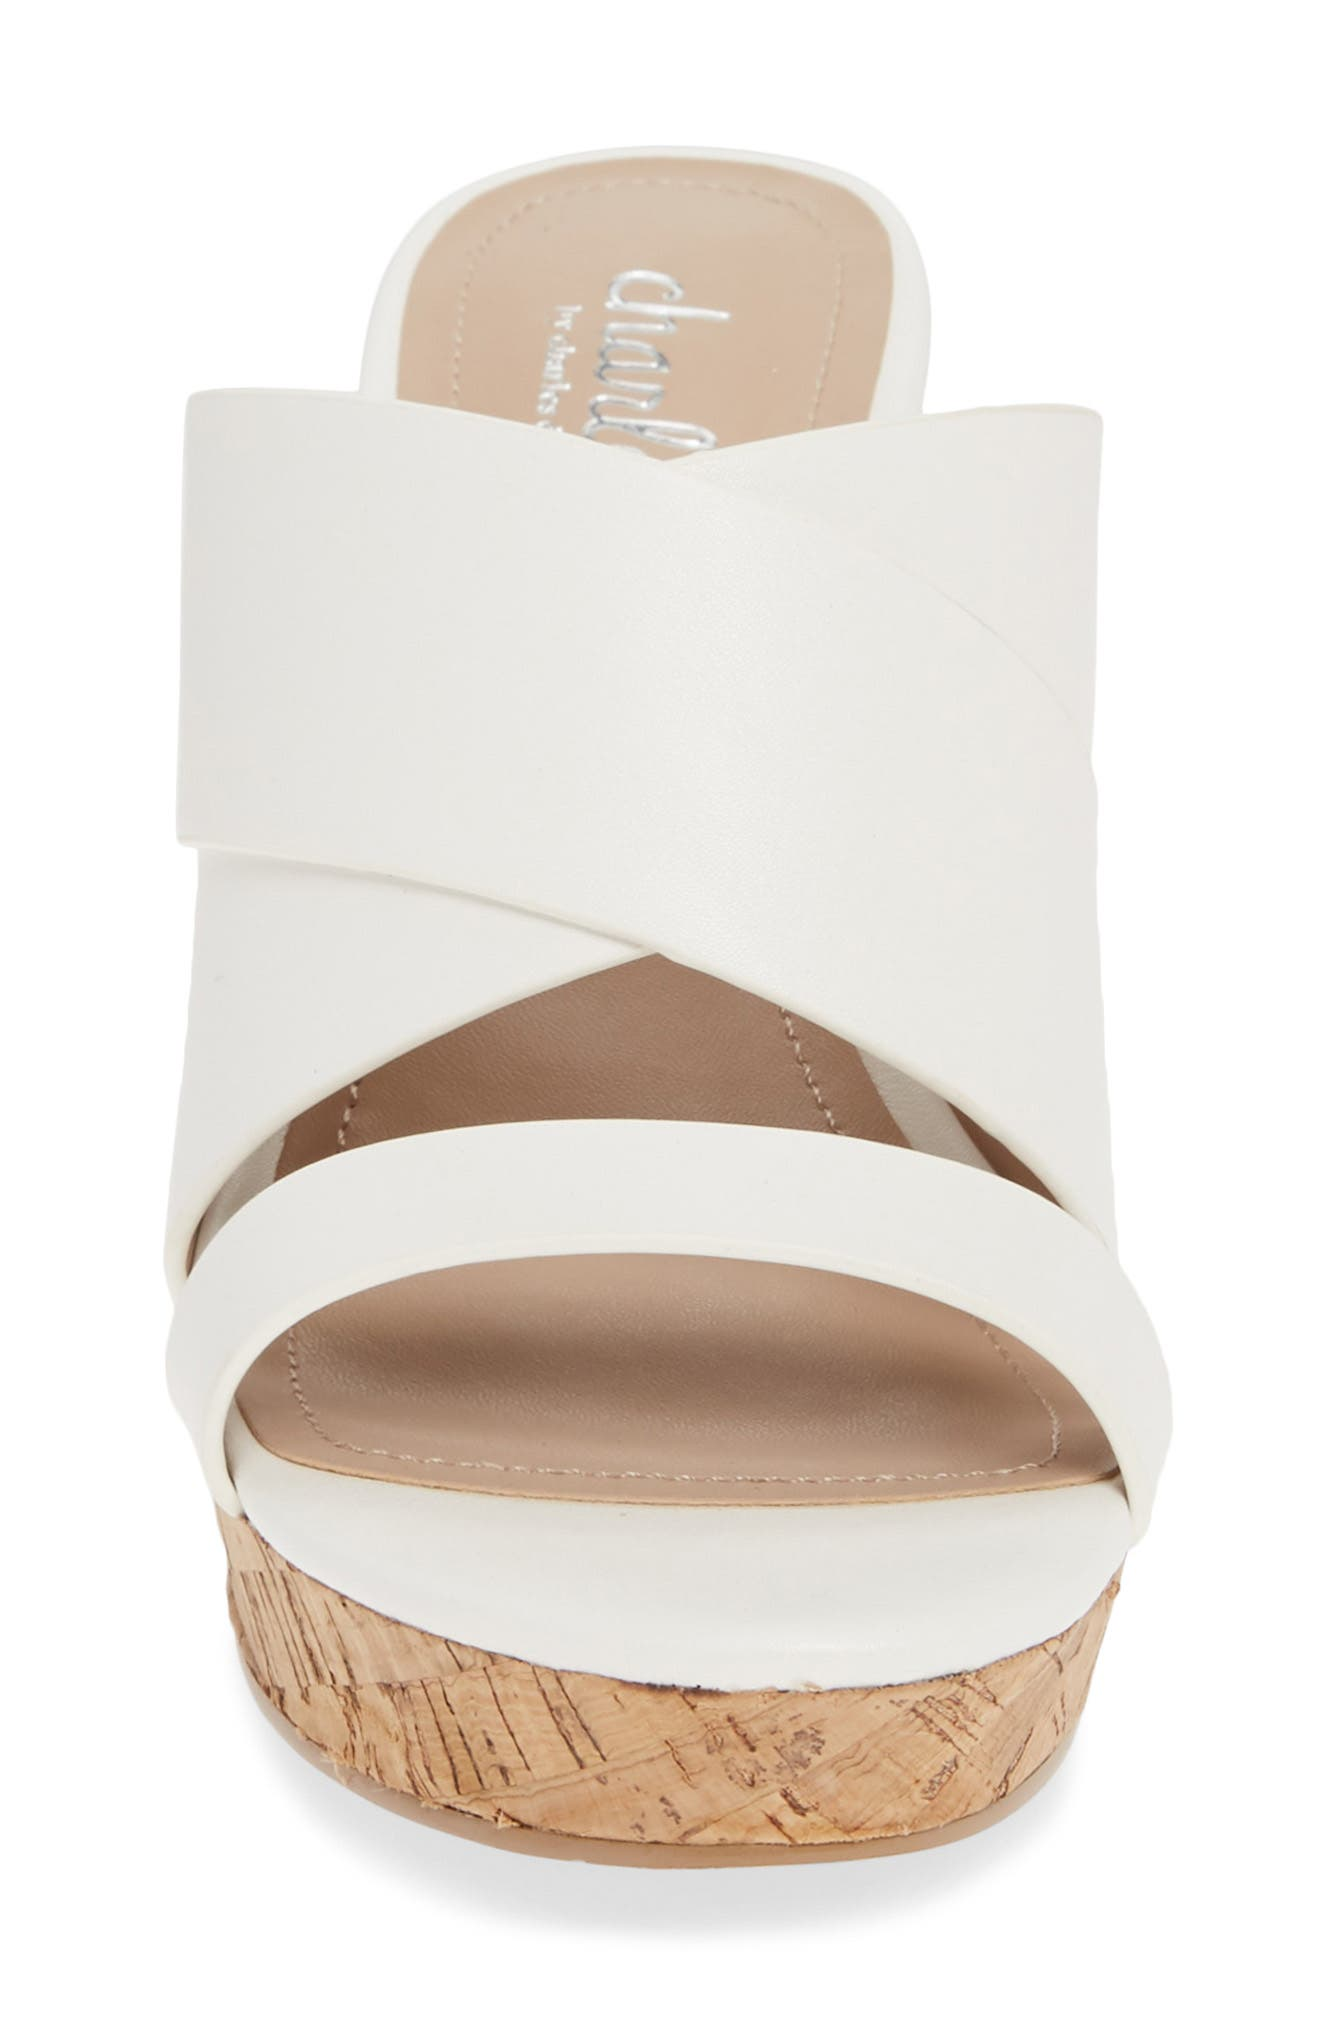 CHARLES BY CHARLES DAVID, Leslie Wedge Sandal, Alternate thumbnail 4, color, WHITE FAUX LEATHER